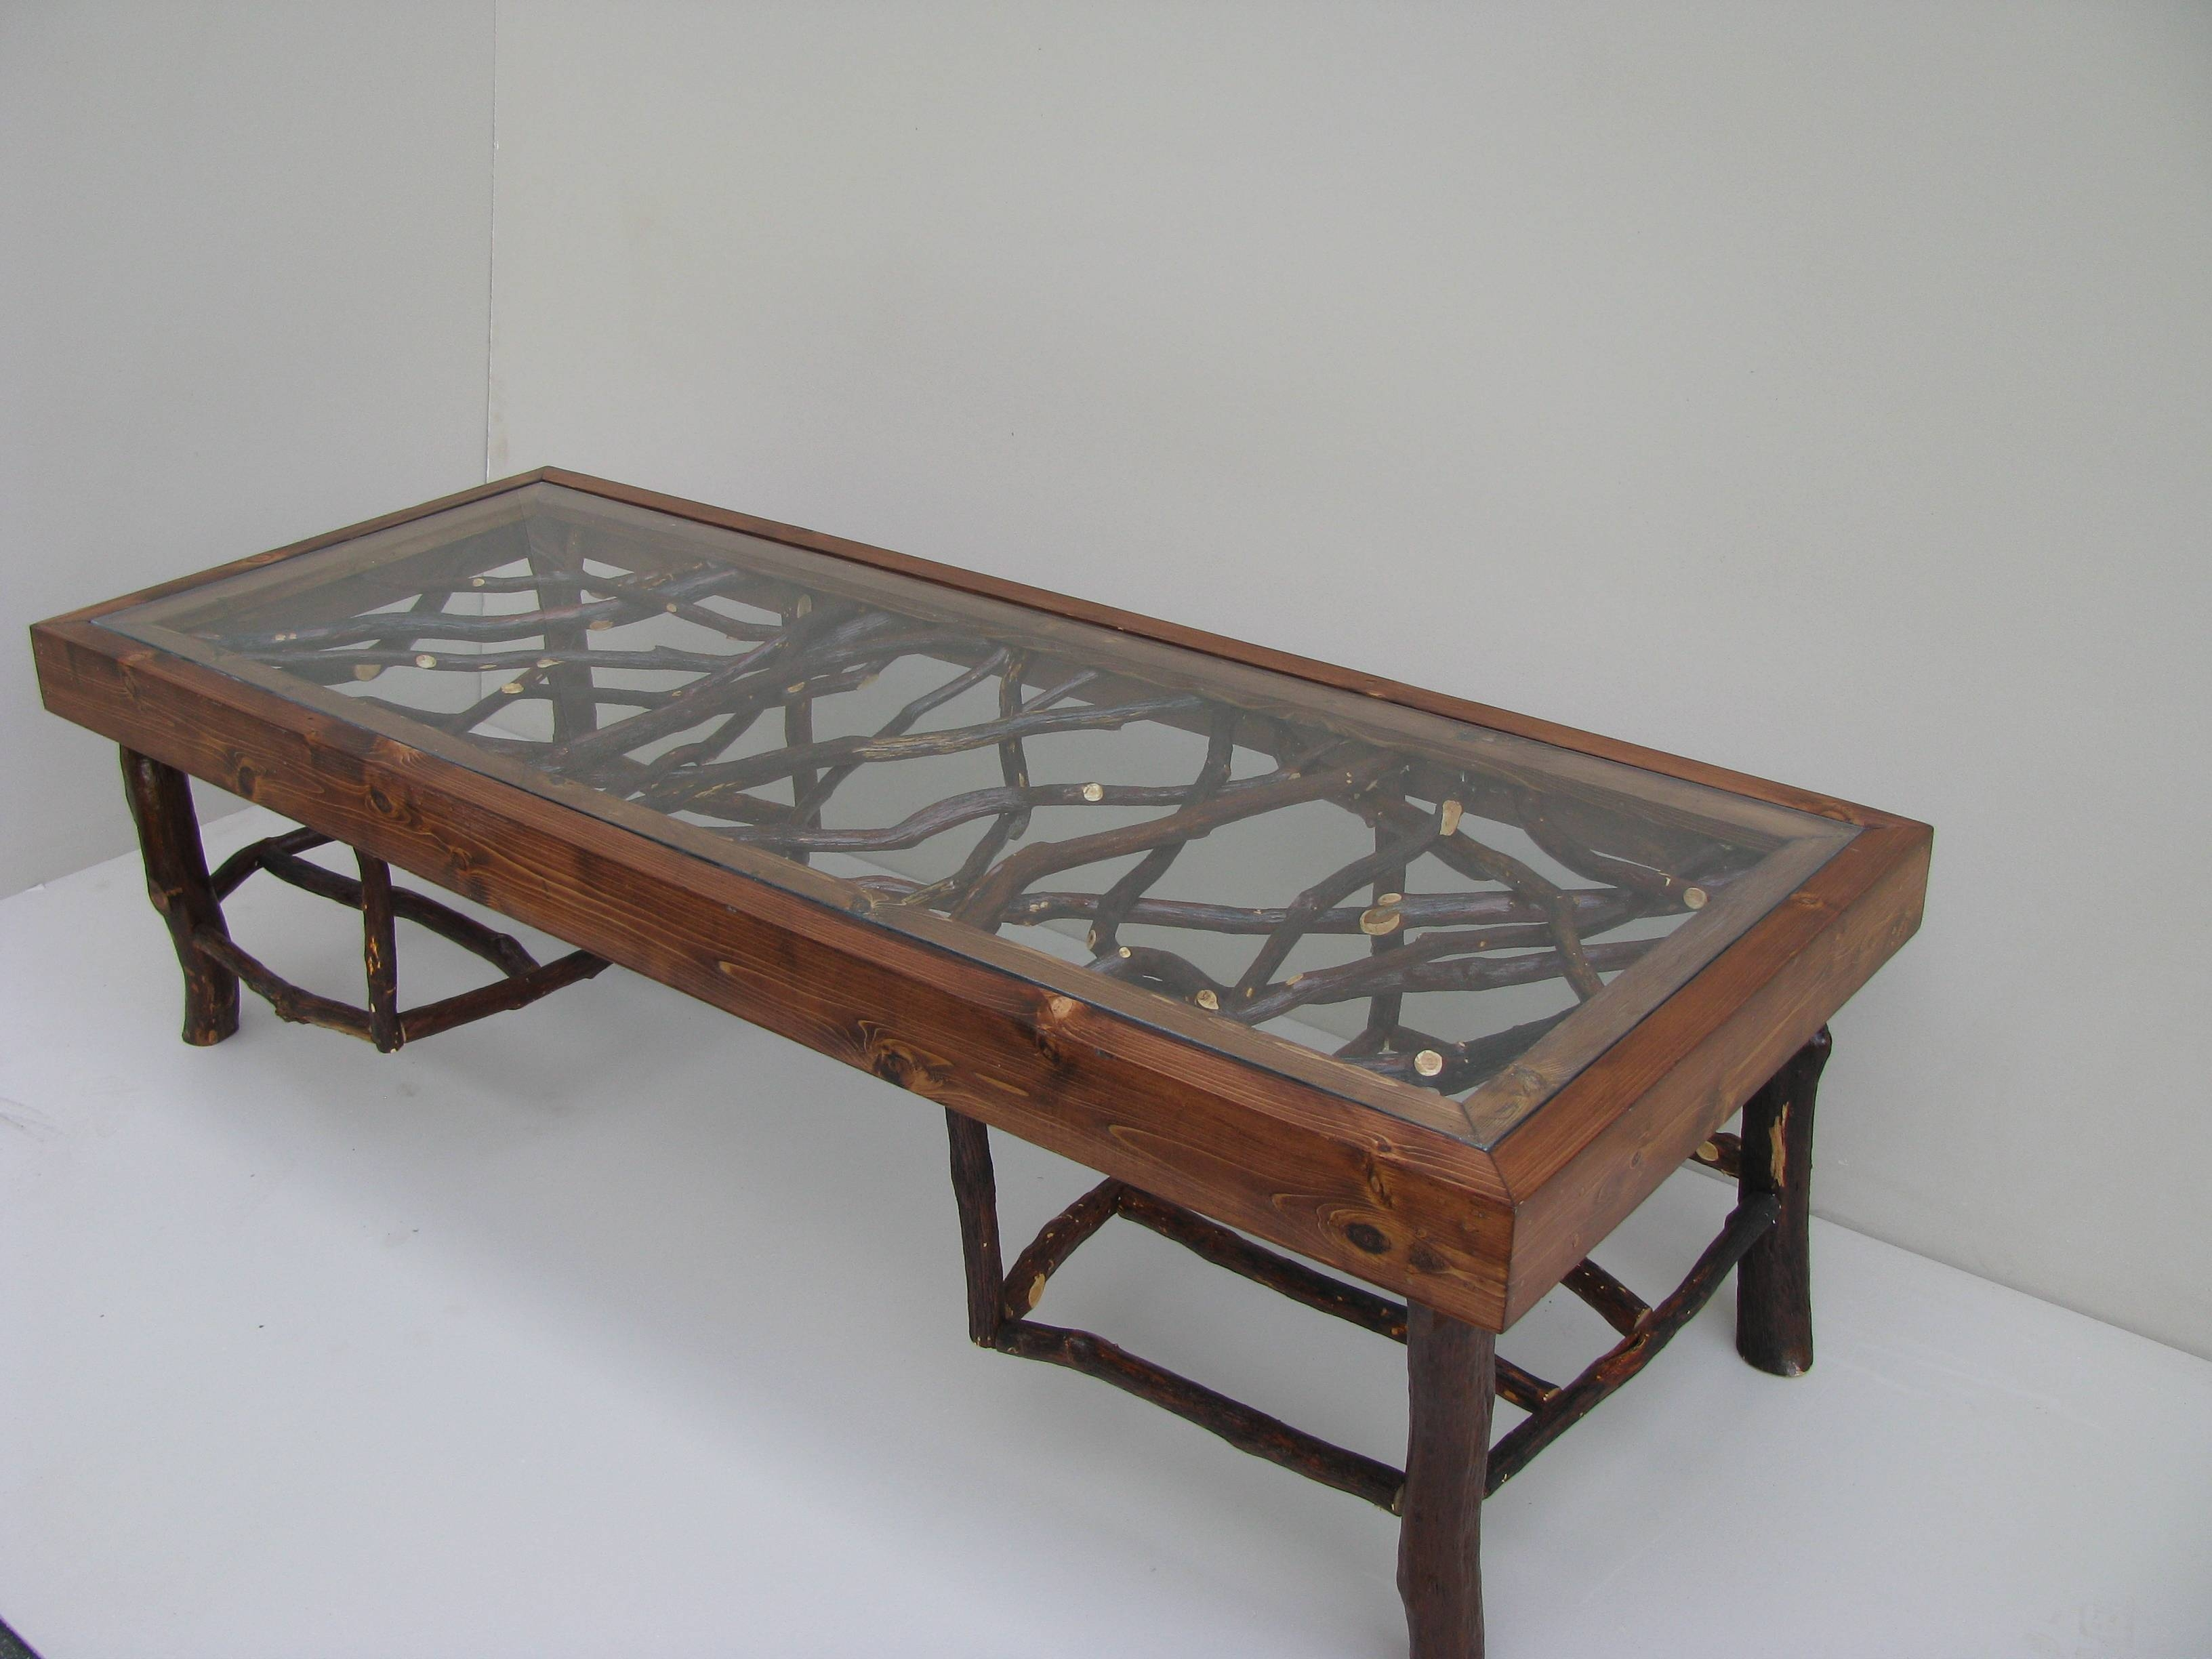 Wood Iron And Glass Coffee Table | Coffee Tables Decoration with regard to Antique Glass Coffee Tables (Image 30 of 30)